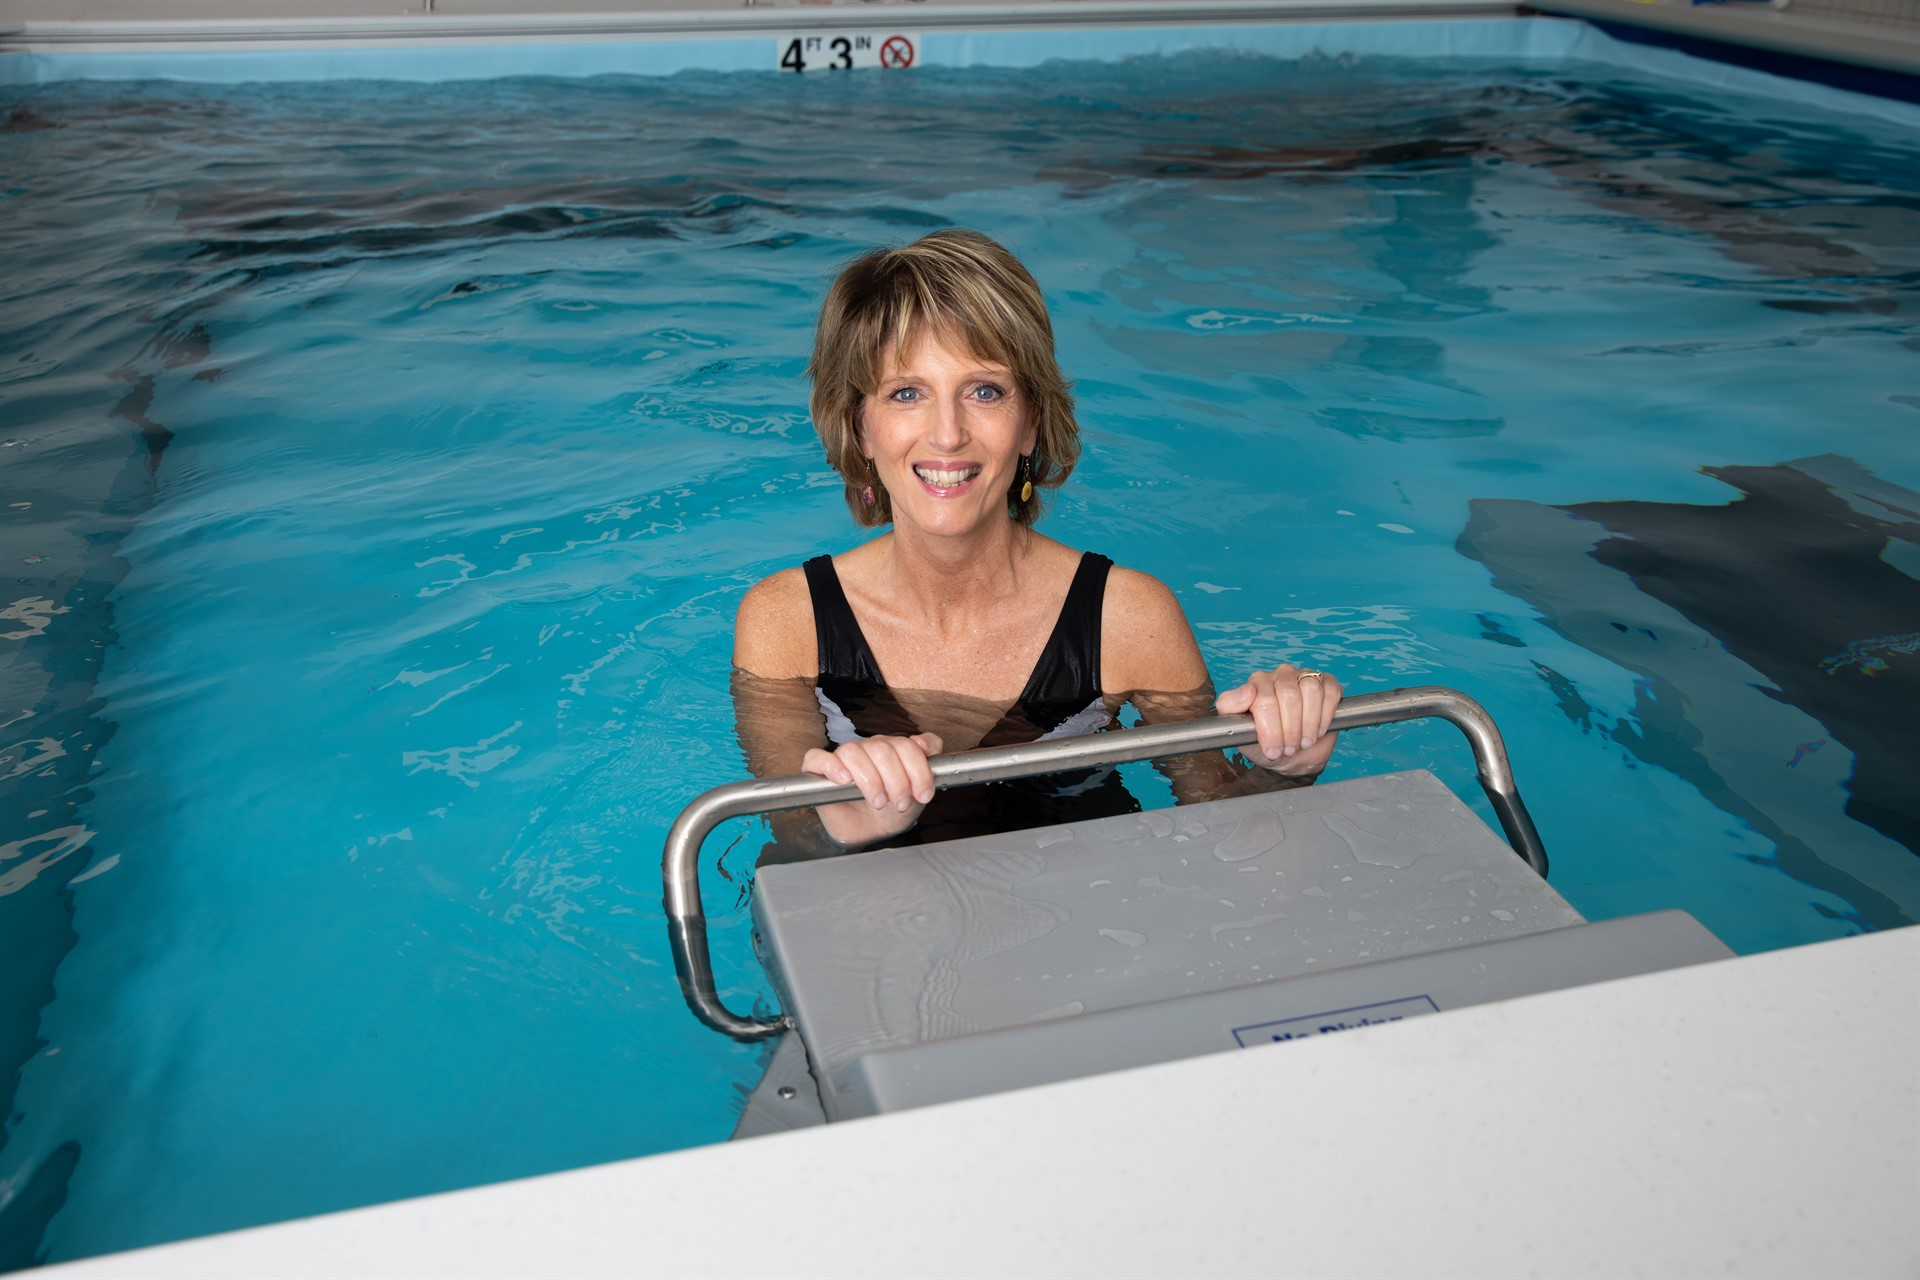 Sidney Health Center now offers Aquatic Therapy